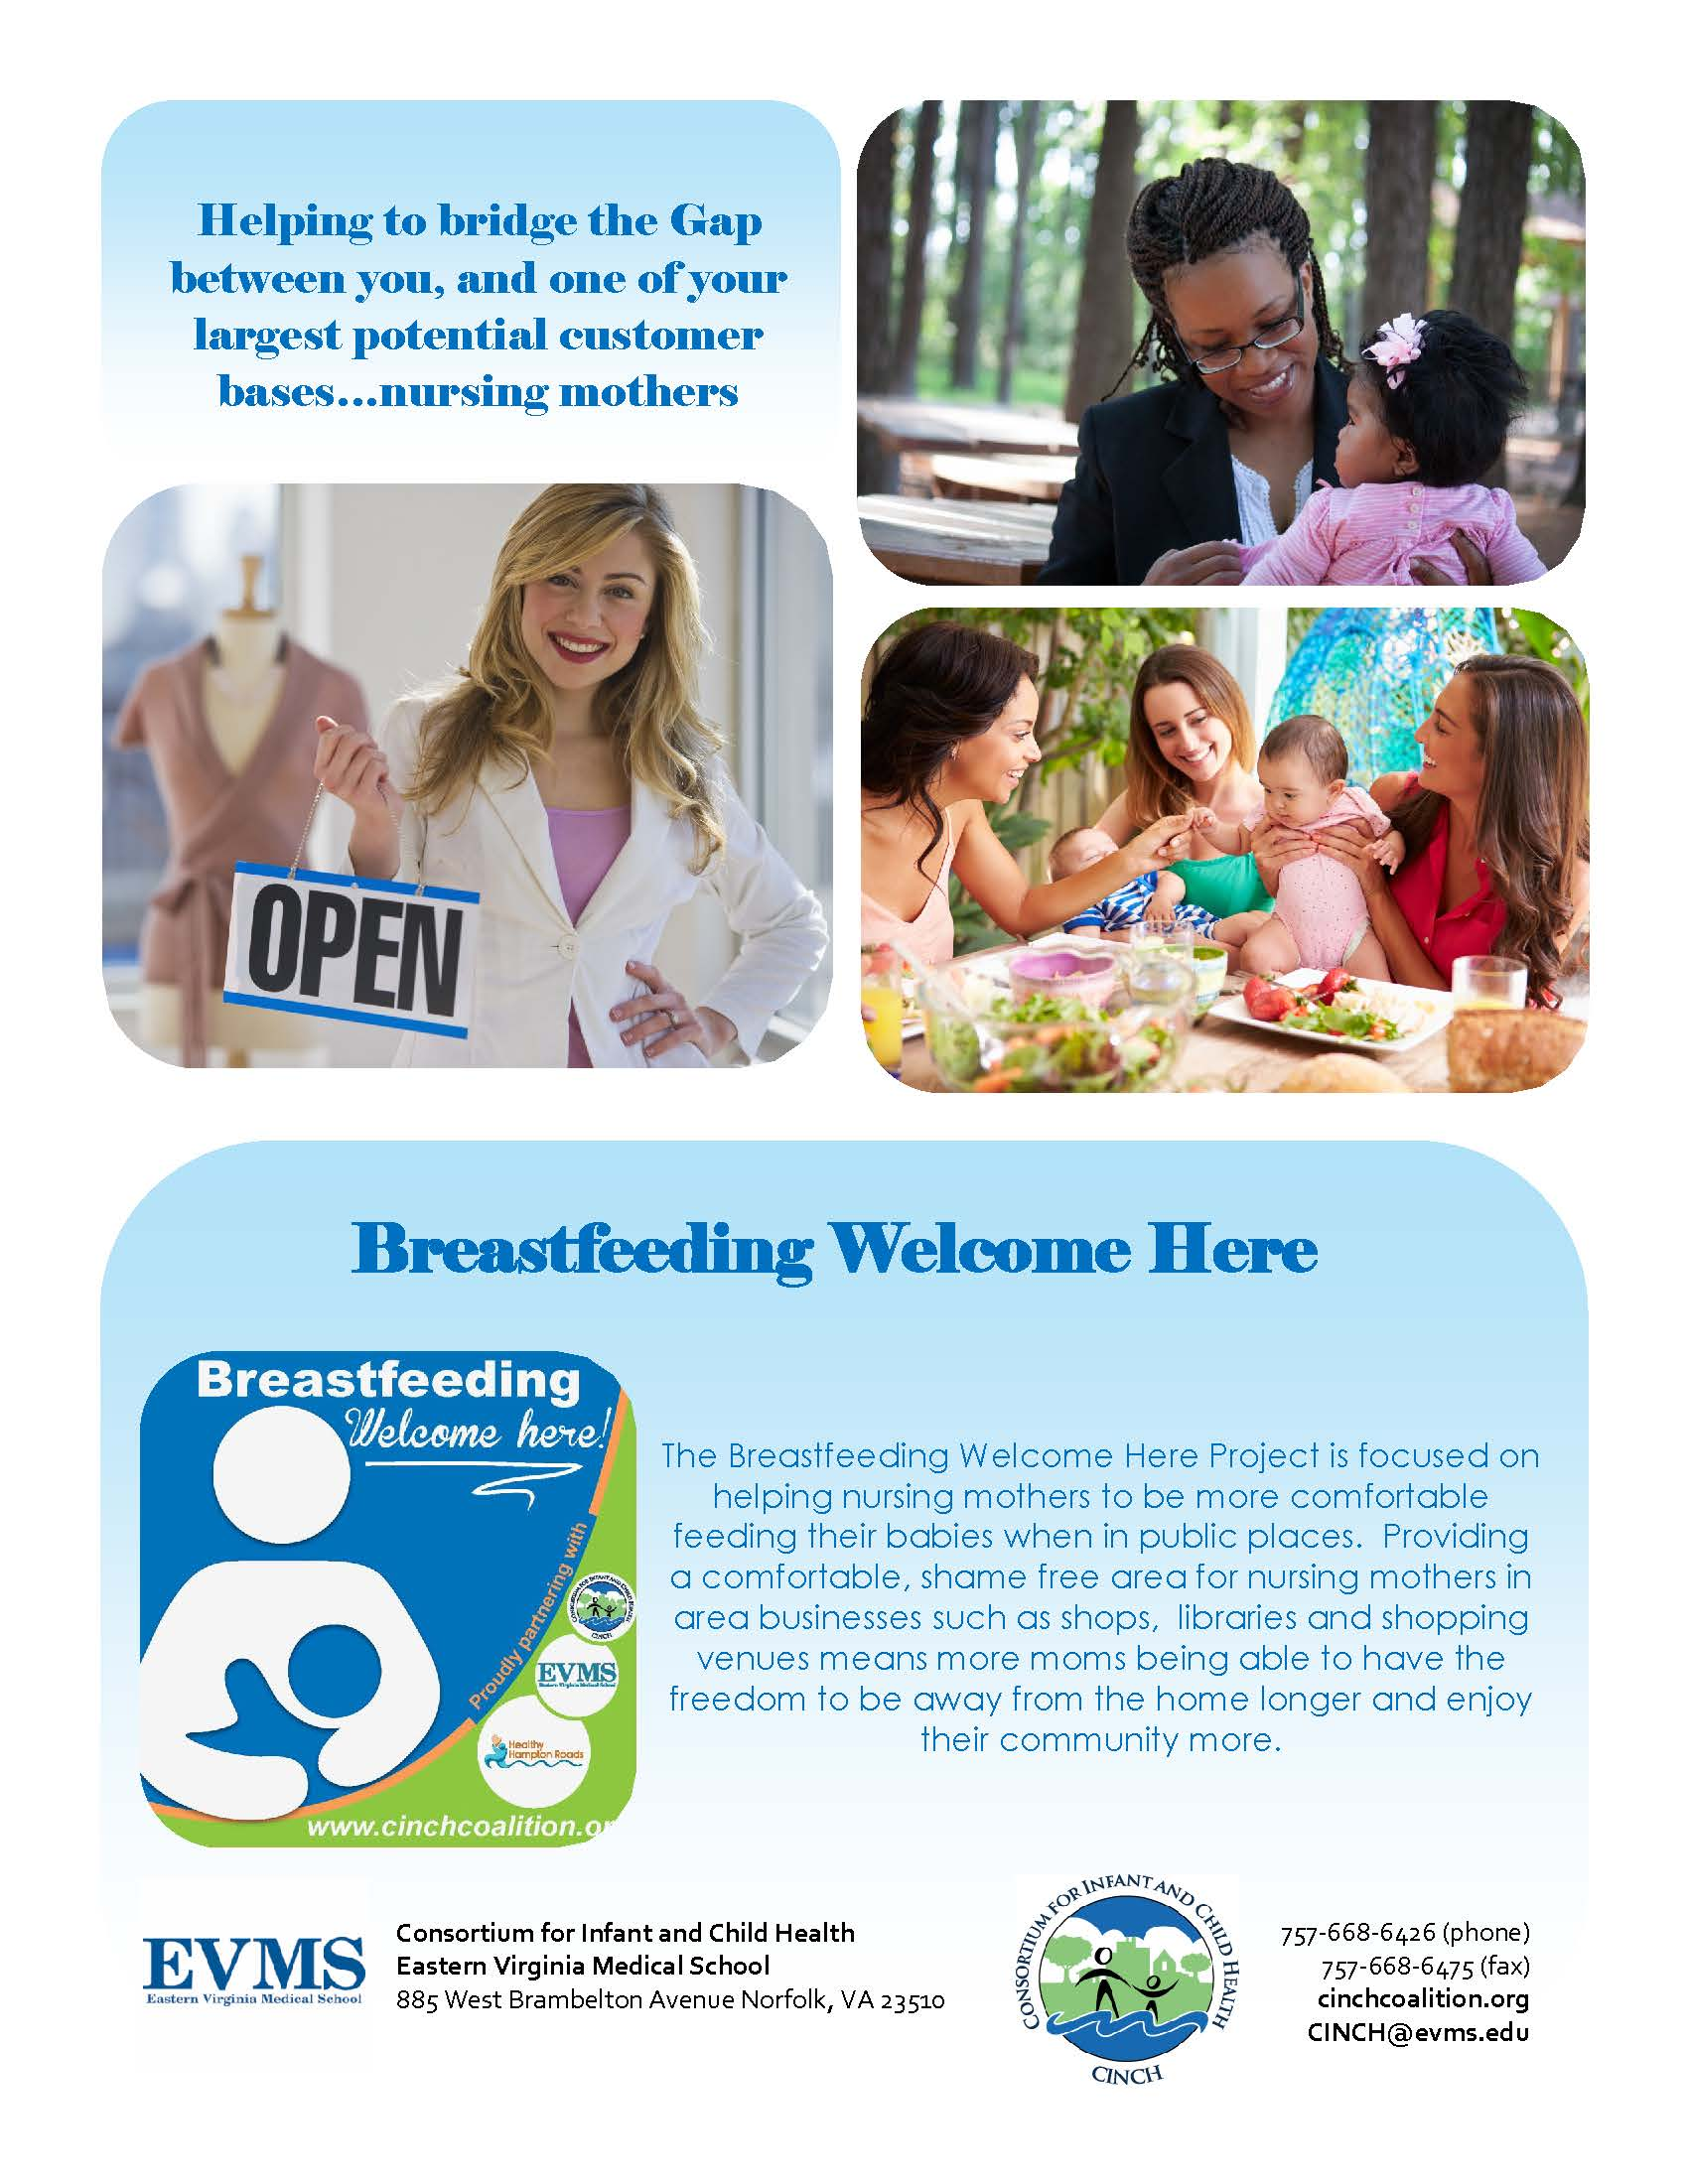 Scandalous advertising in support of breastfeeding 37